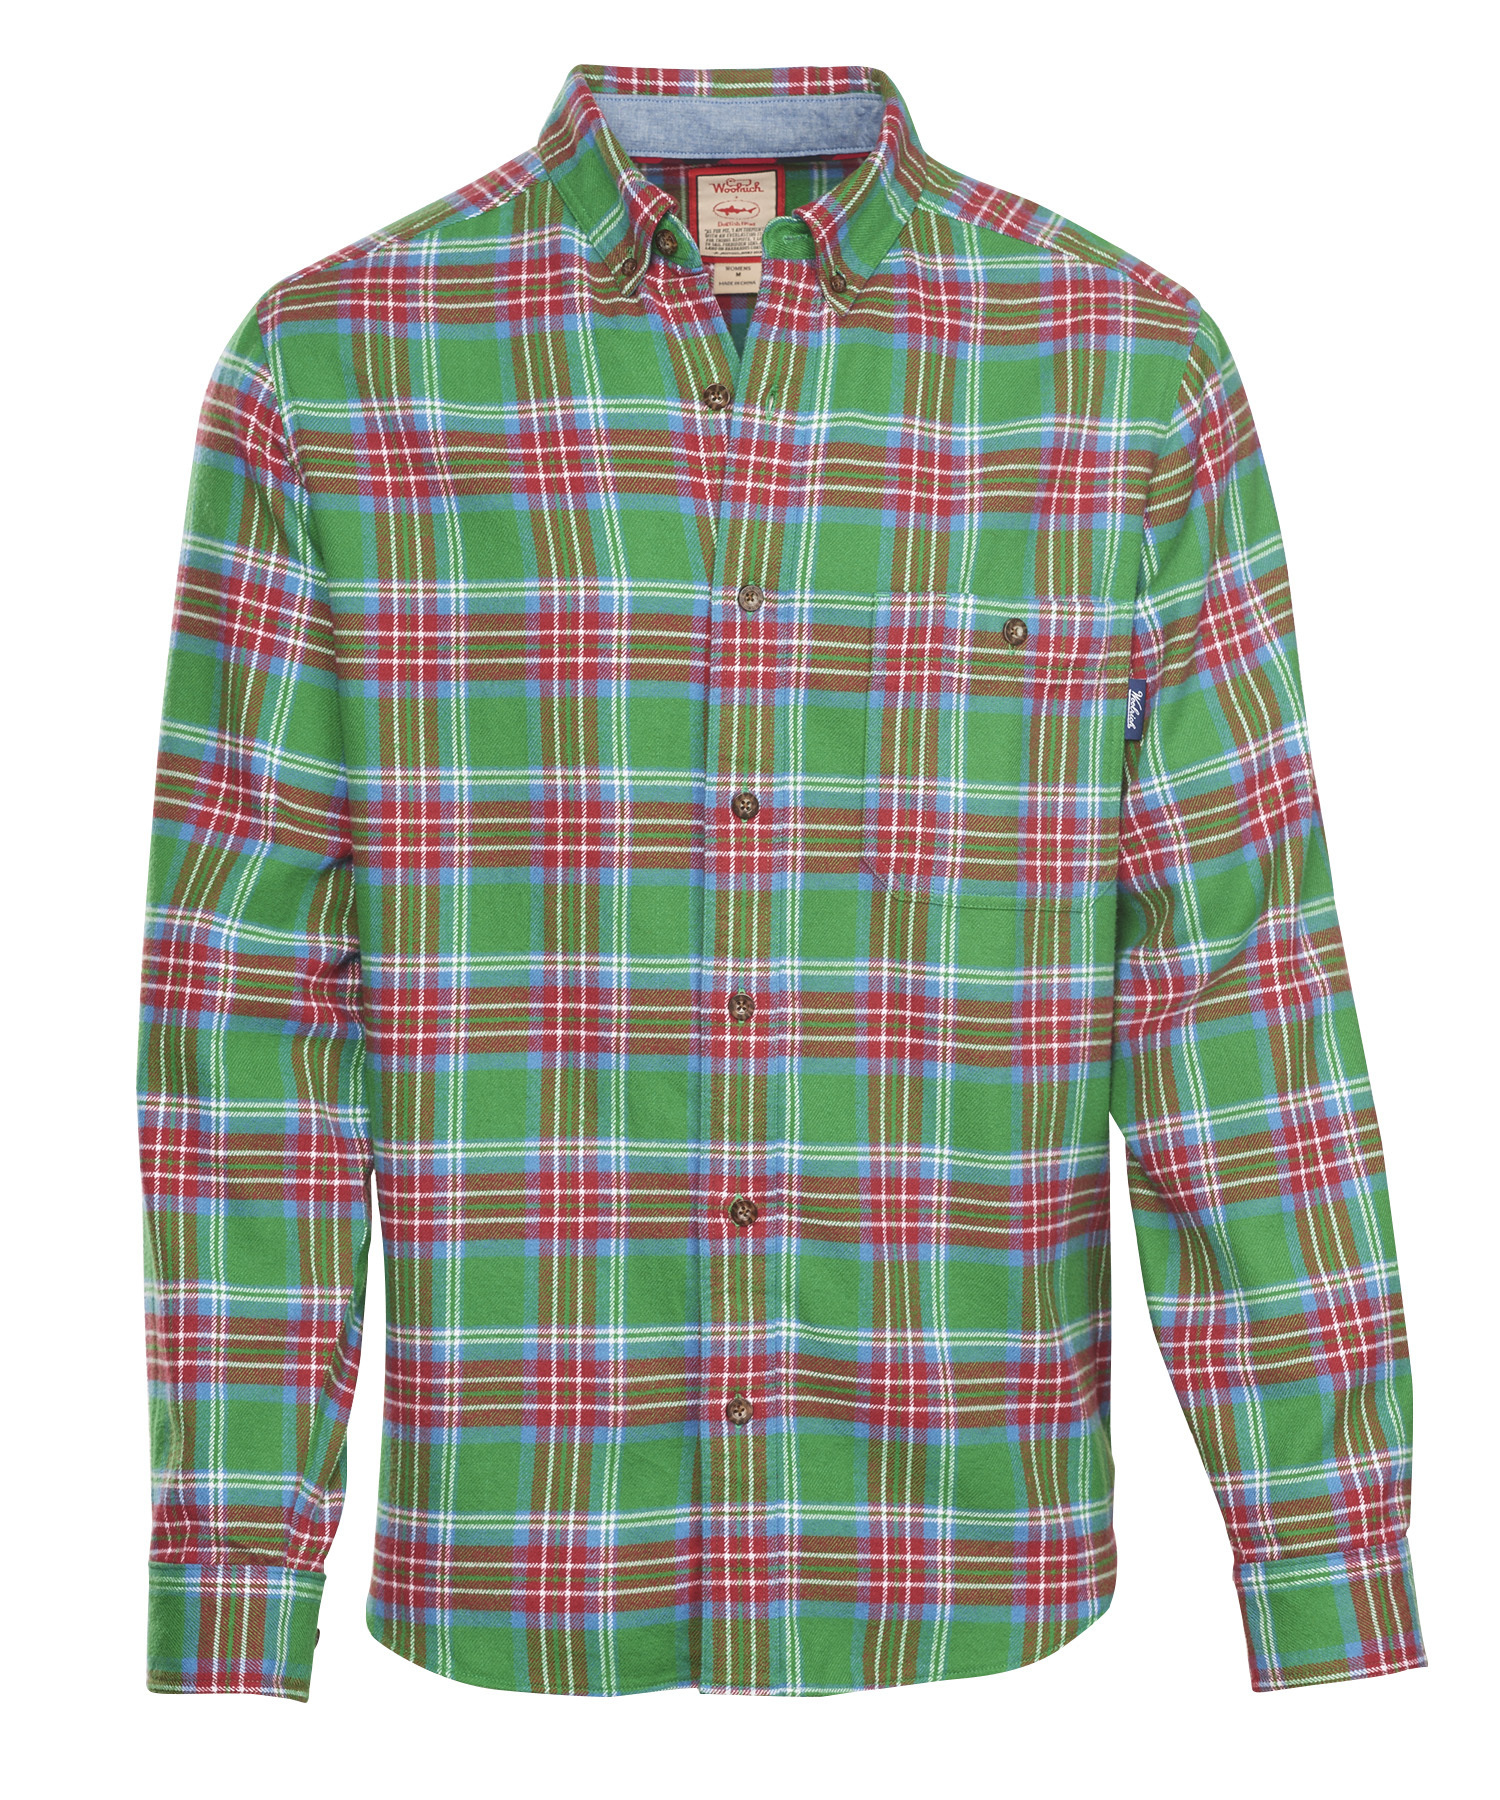 flannel shirts for men menu0027s trout run flannel shirt in dogfish plaid OVMSDDE